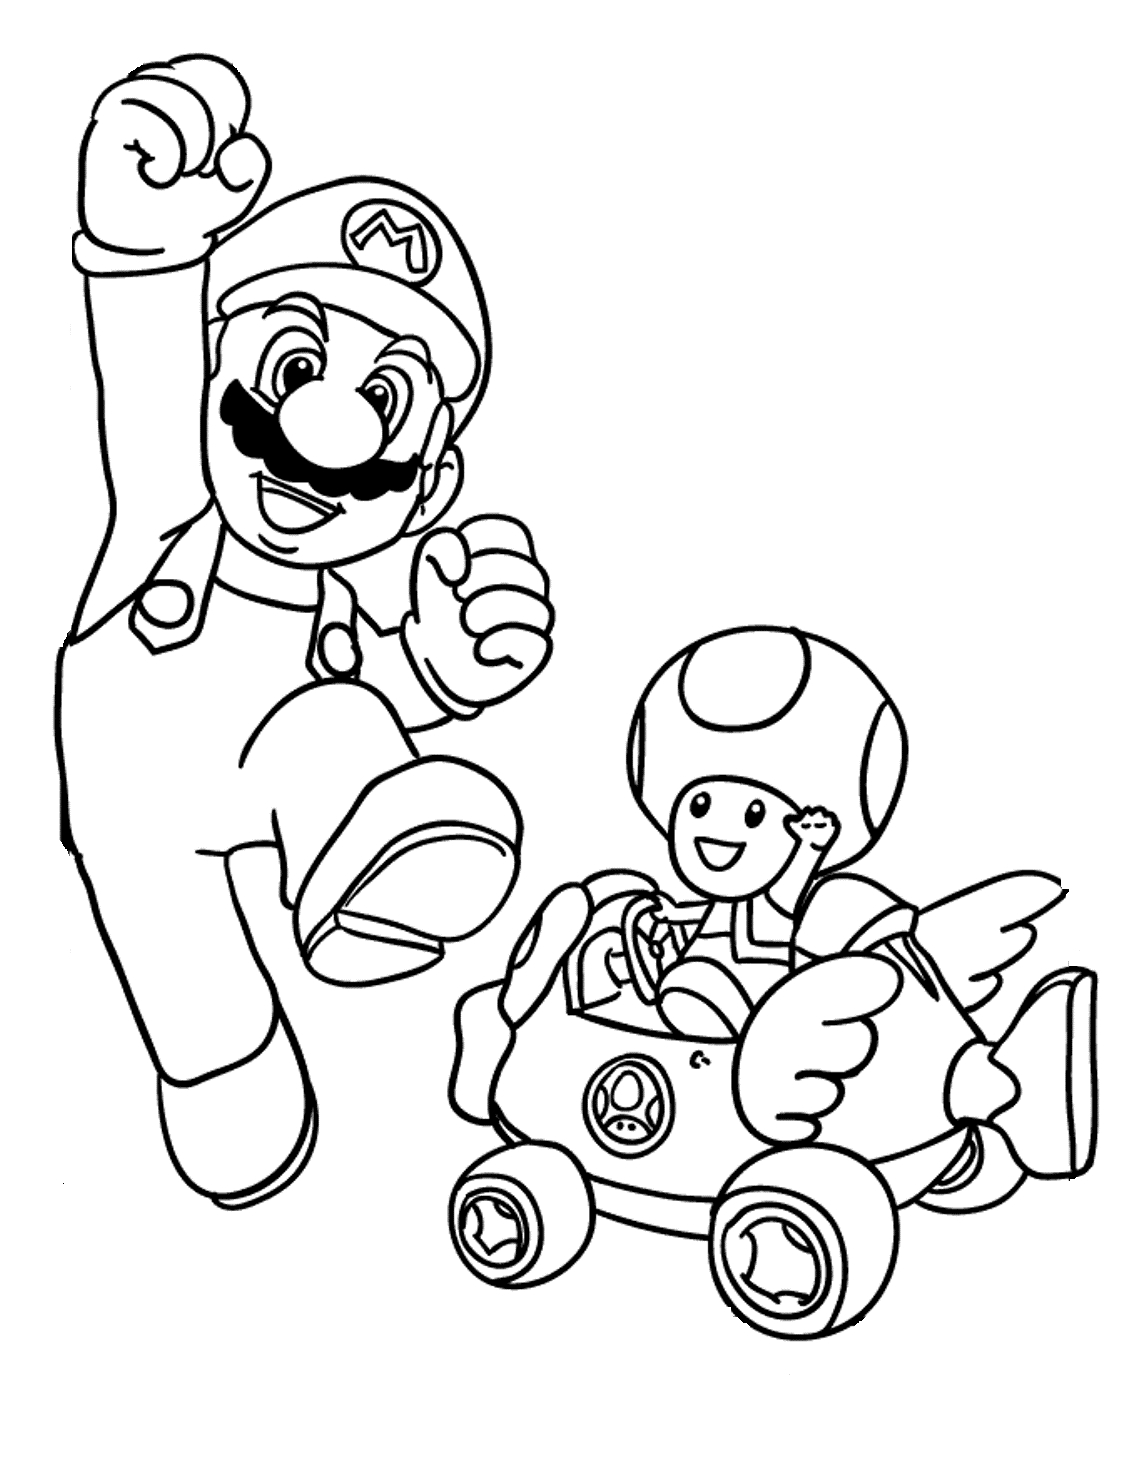 Super Mario Toad Coloring Pages At Getcolorings